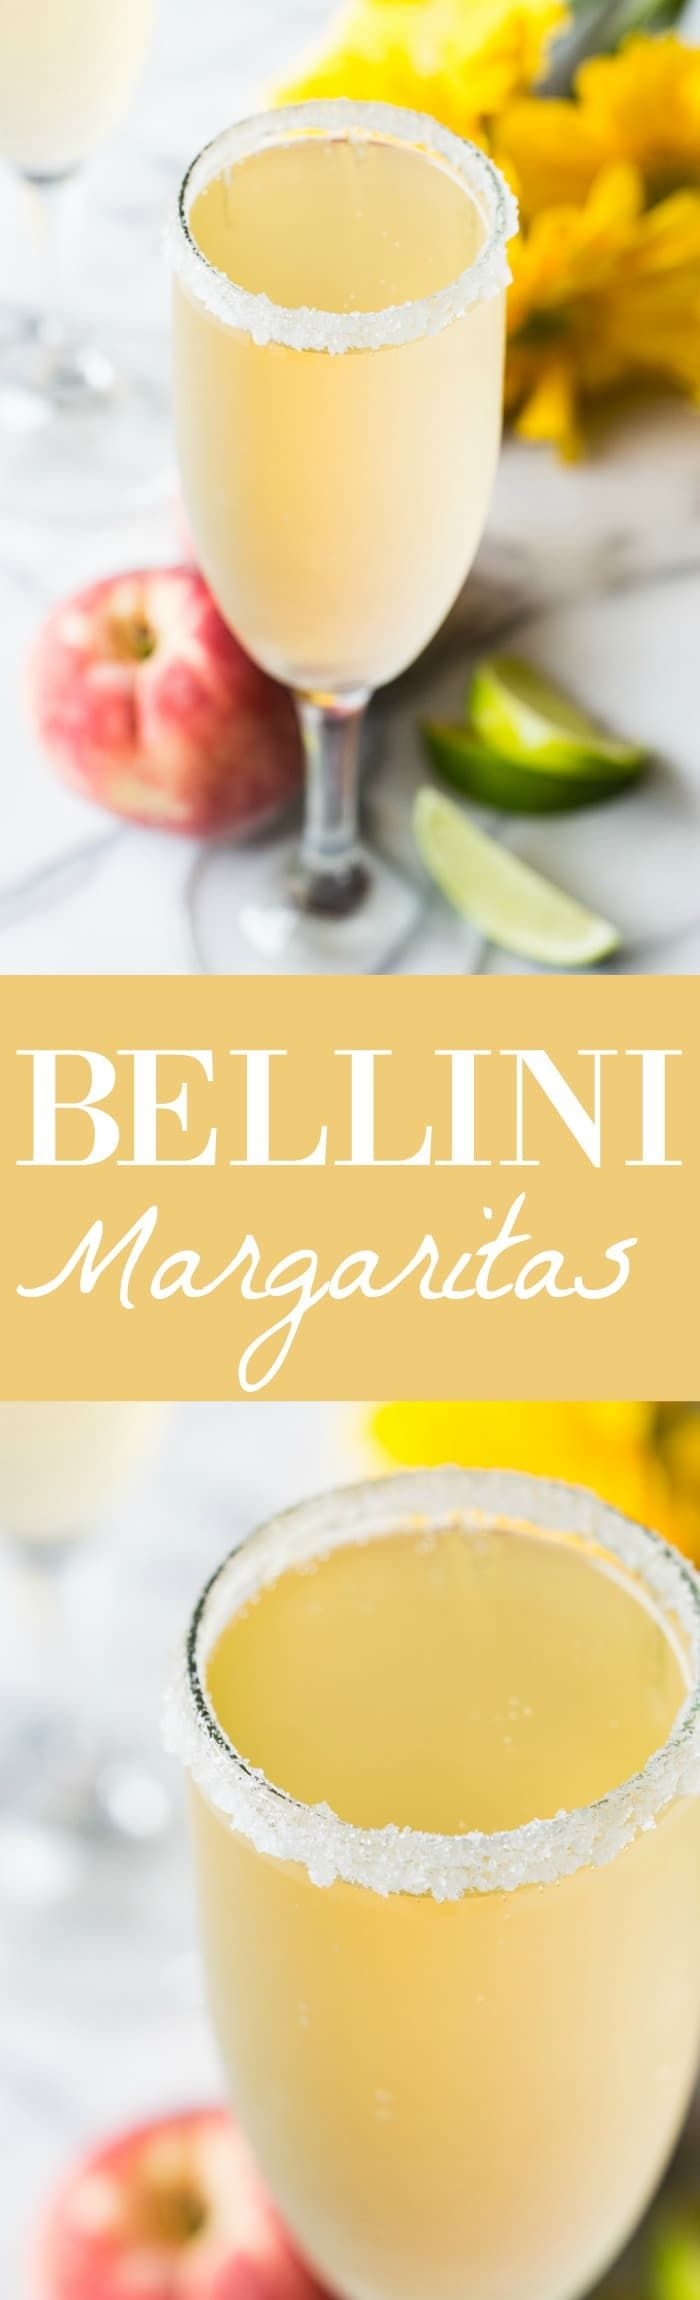 The perfect brunch cocktail! A mixture of a bellini and margarita! Made with peach juice, tequila, and champagne! I'm so excited to be sharing an entire brunch meal with you this week! Starting with this recipe for Bellini Margaritas. I think it's no surprise I like margaritas.. I thought margarita-fying a classic brunch drink would be a fun way to help celebrate Mother's Day this coming weekend. That's right.. Mother's Day. I deserve a brunch right?? So do all of y...